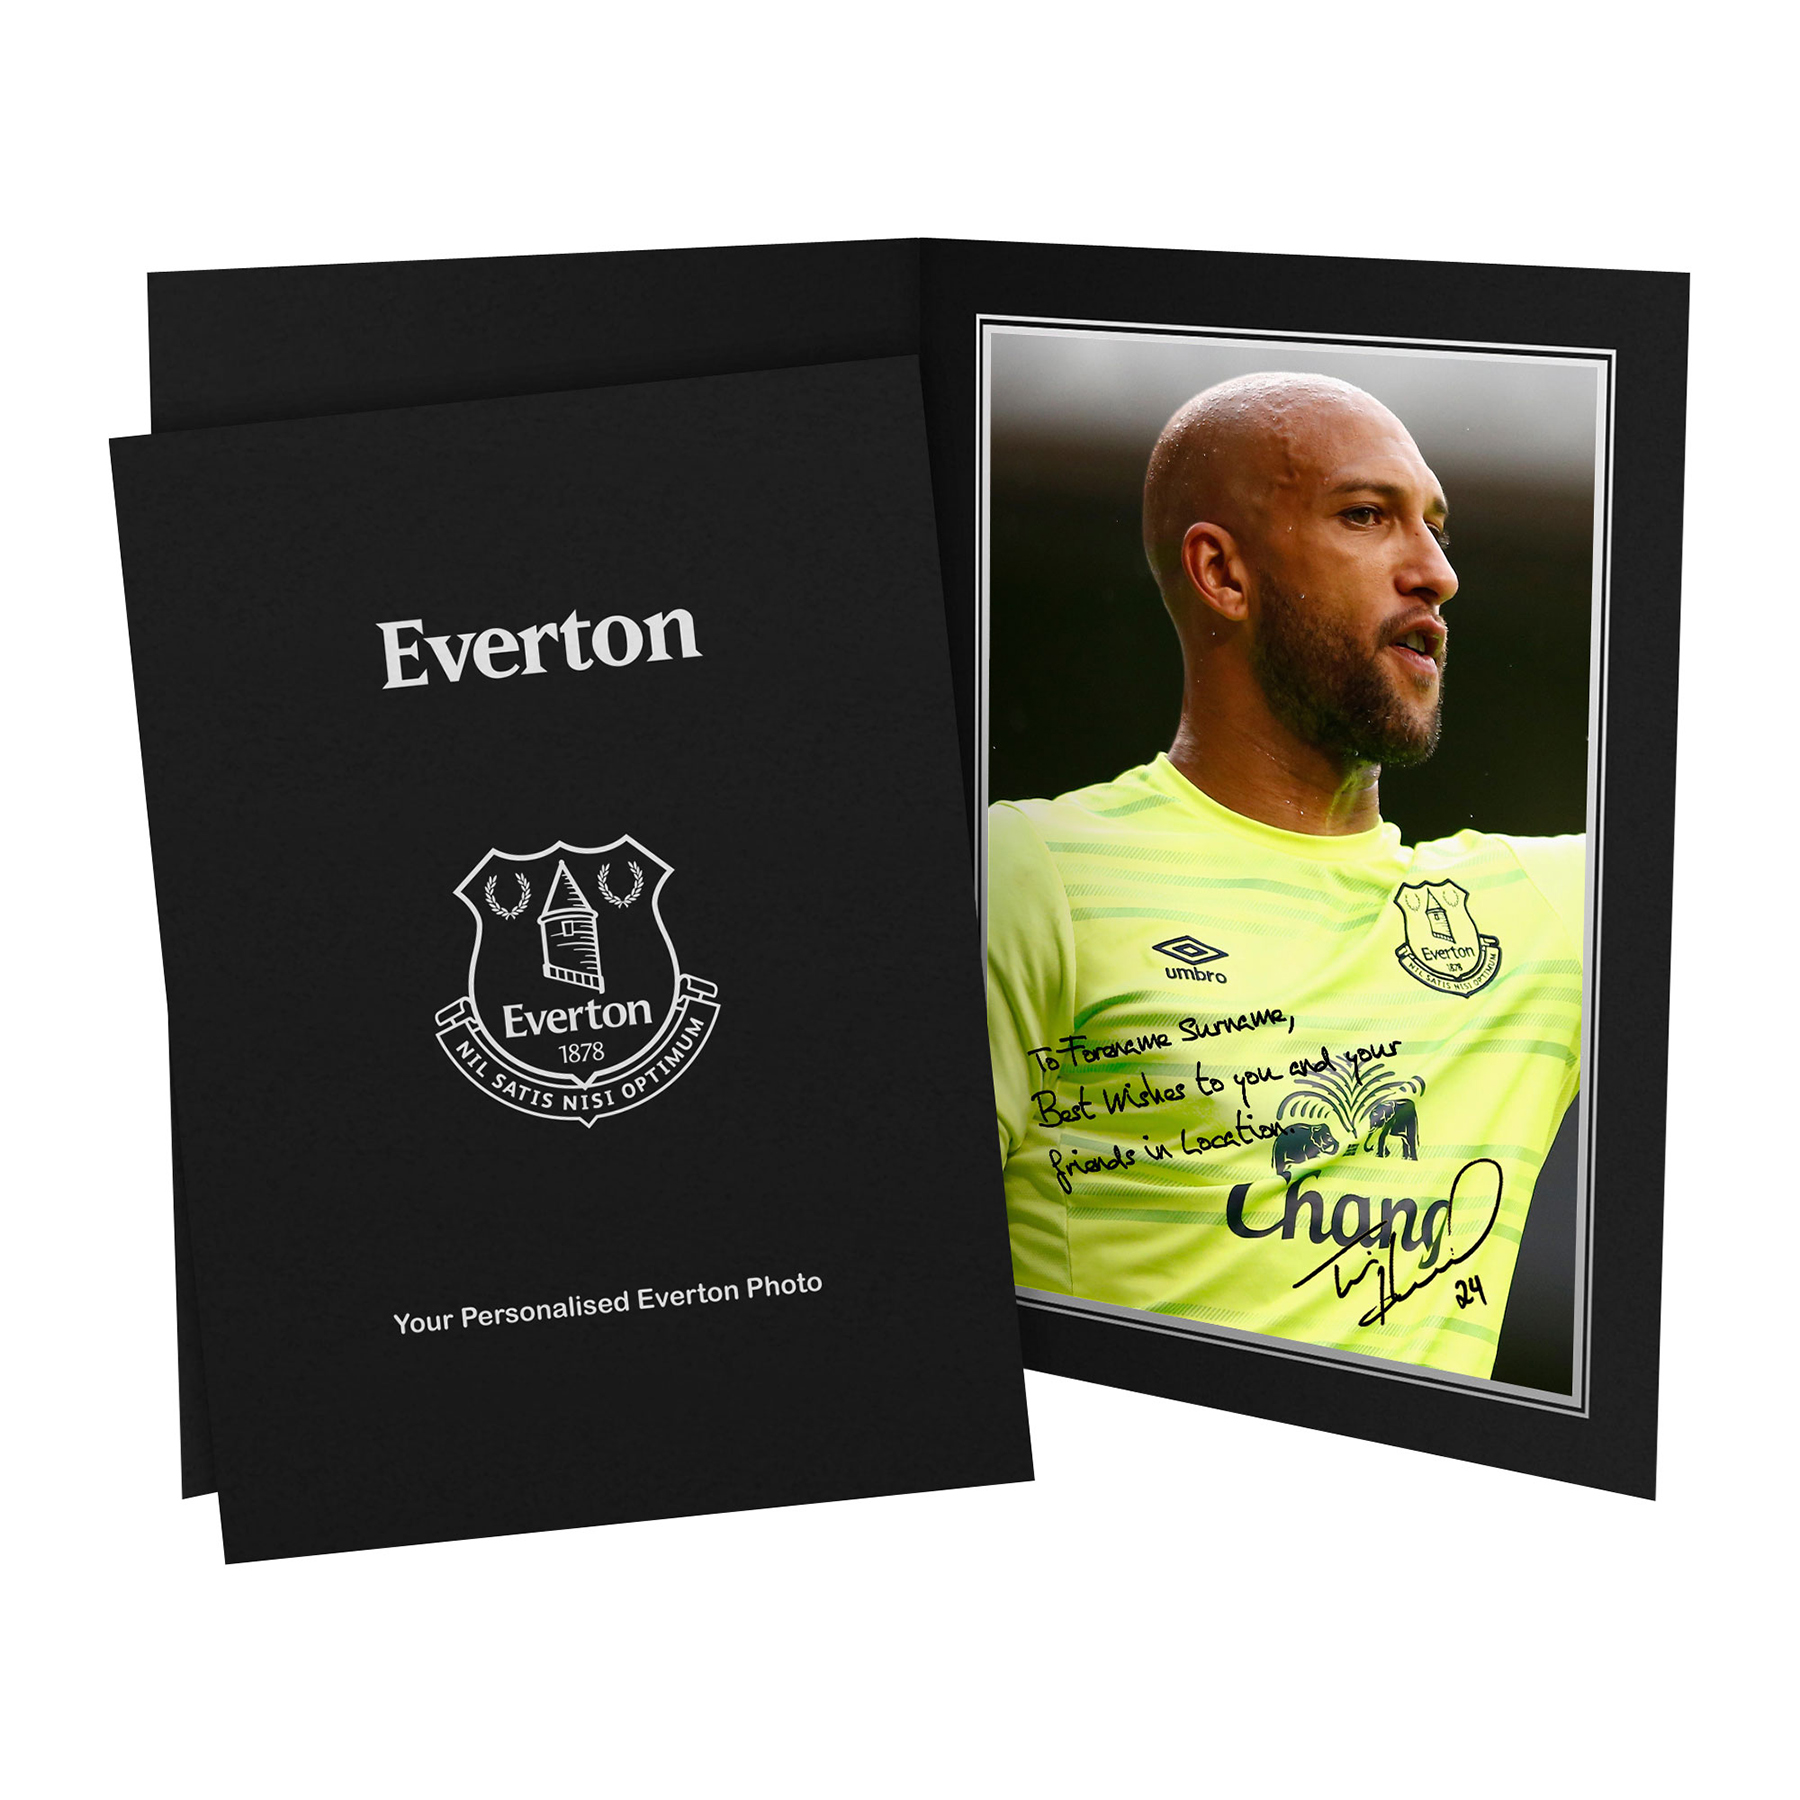 Everton Personalised Signature Photo in Presentation Folder - Howard